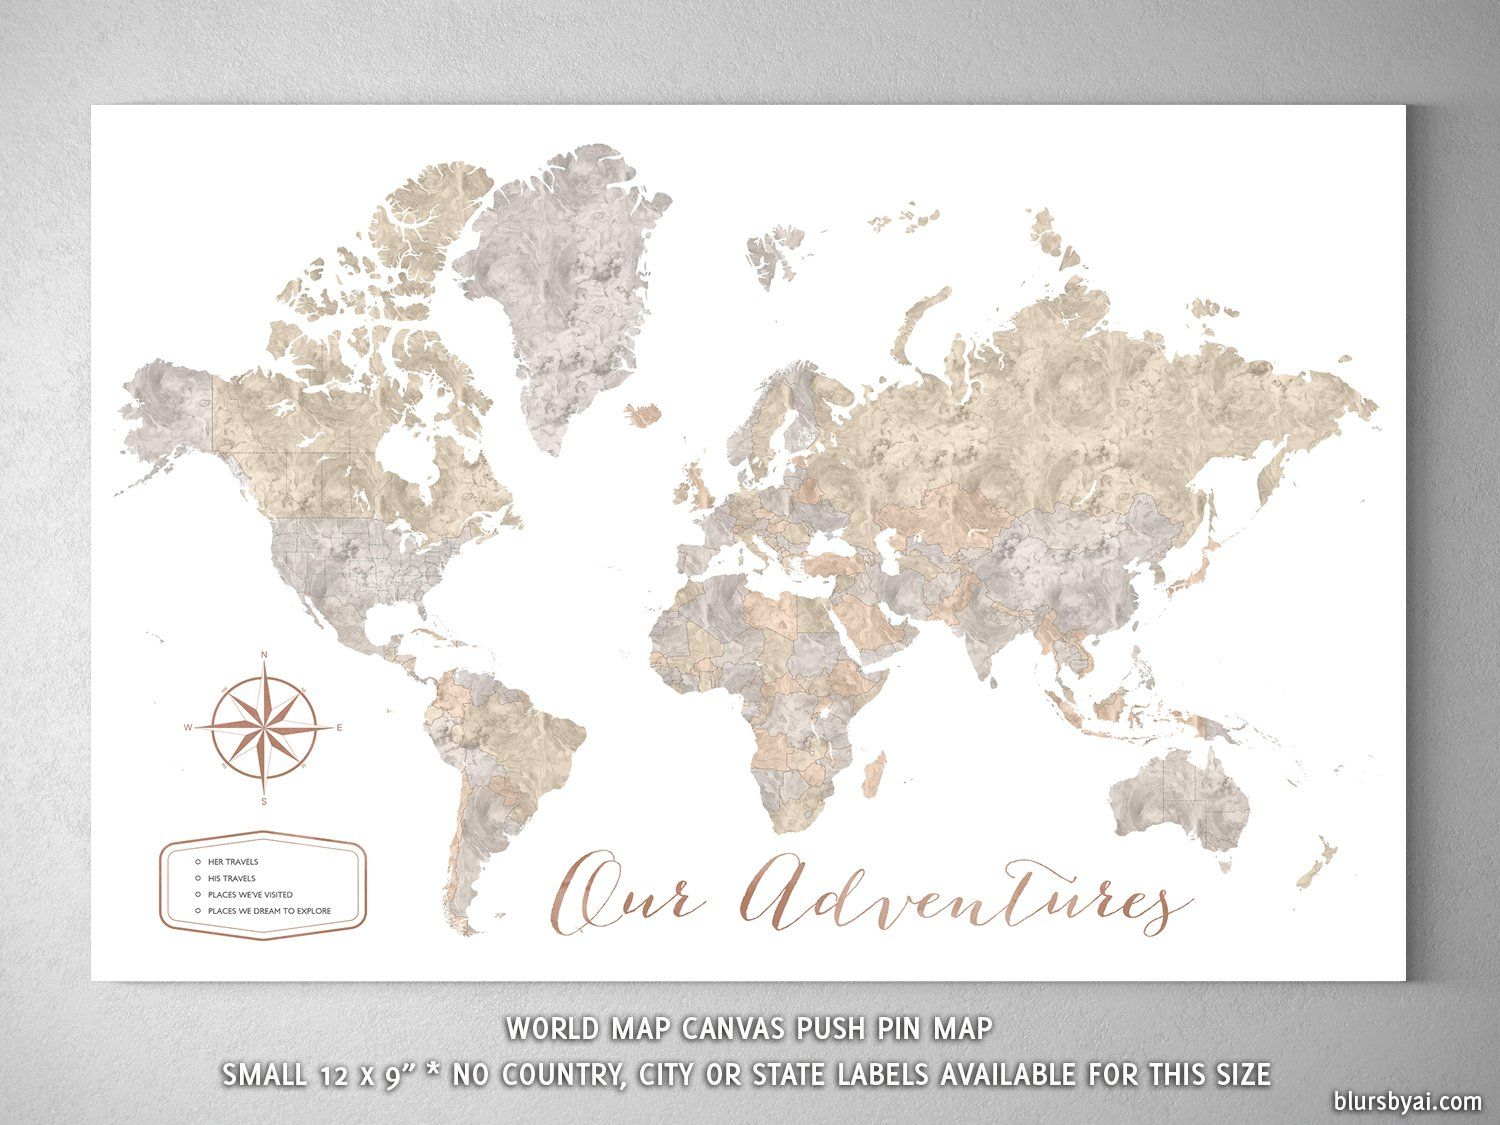 Our Adventures small world map push pin for marking your travels